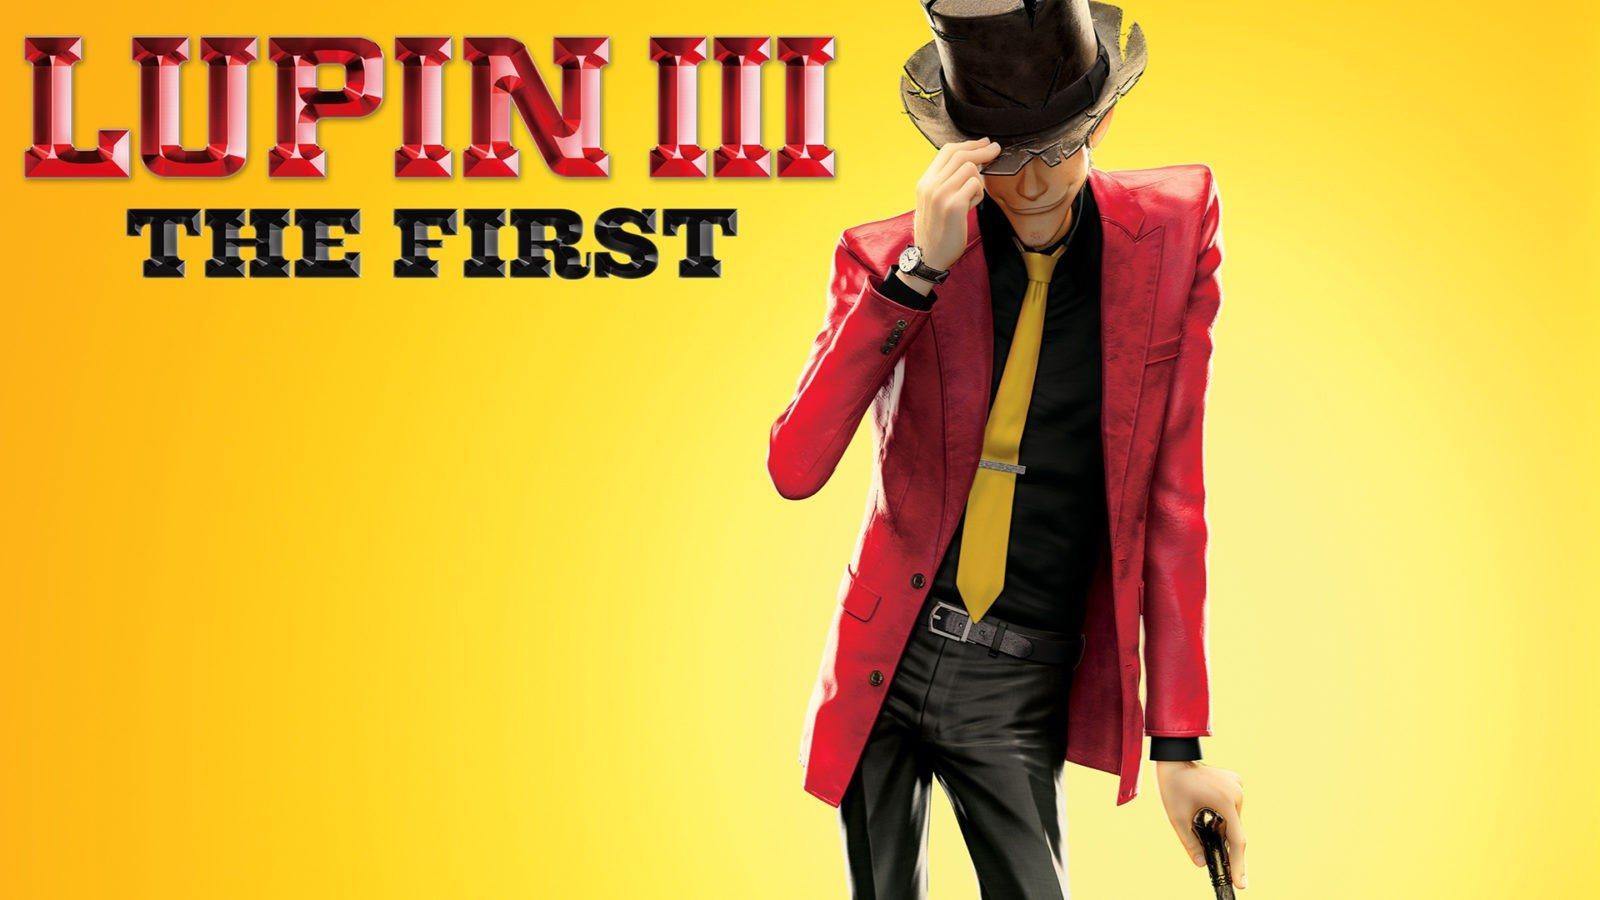 Lupin III: The First (2020) Subtitle (English Srt) Download